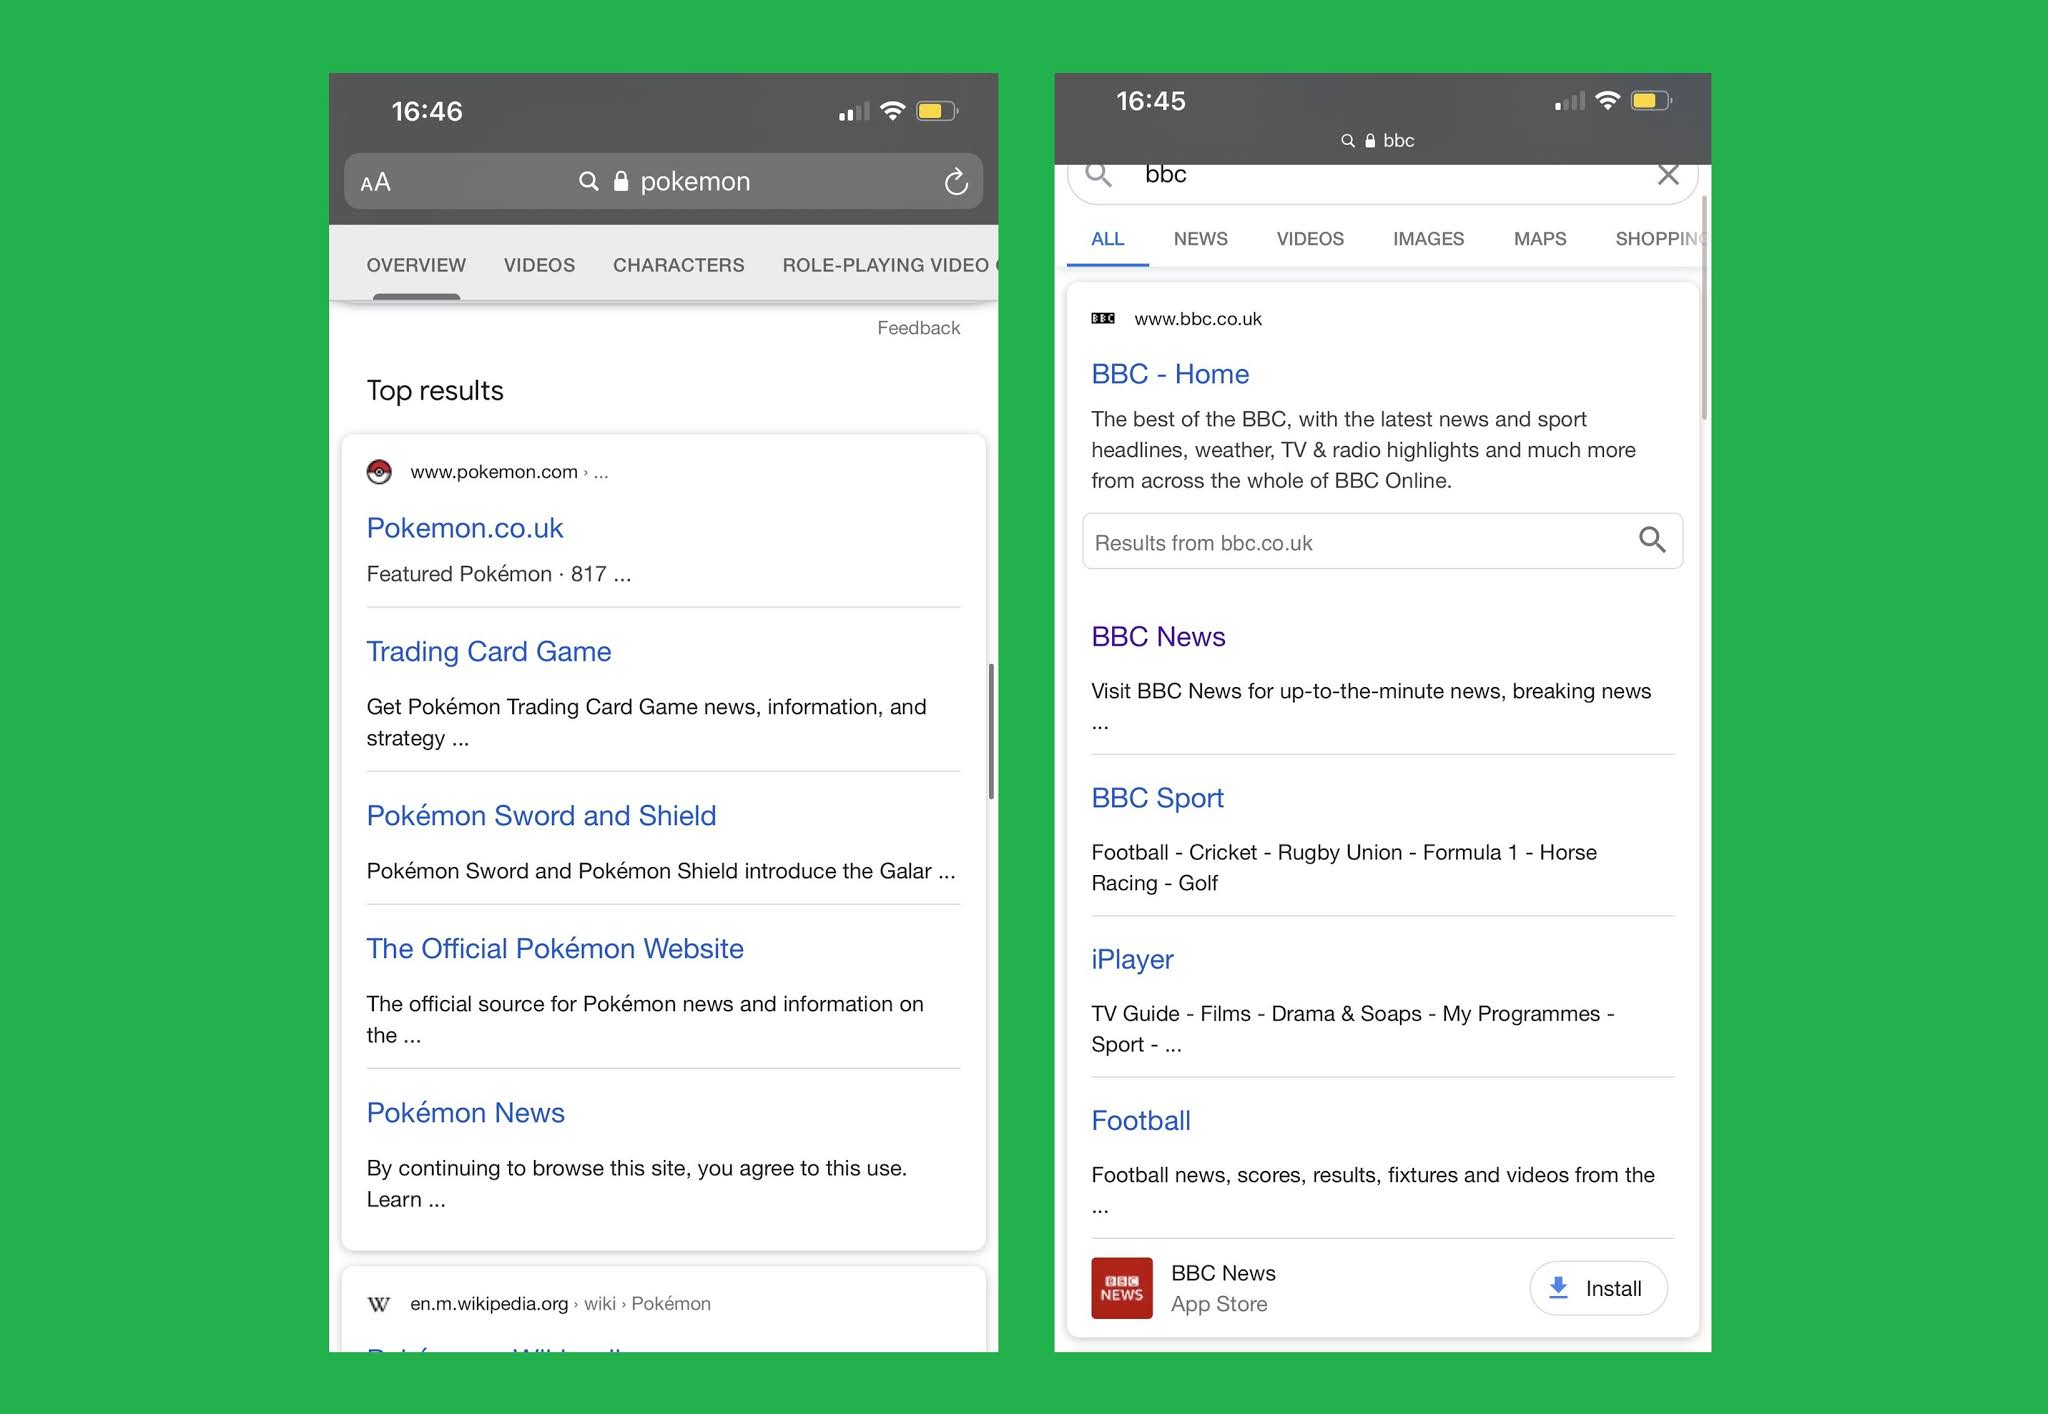 Google Is Testing New Layout And Design For Their Sitelinks On Smartphones Digital Information World